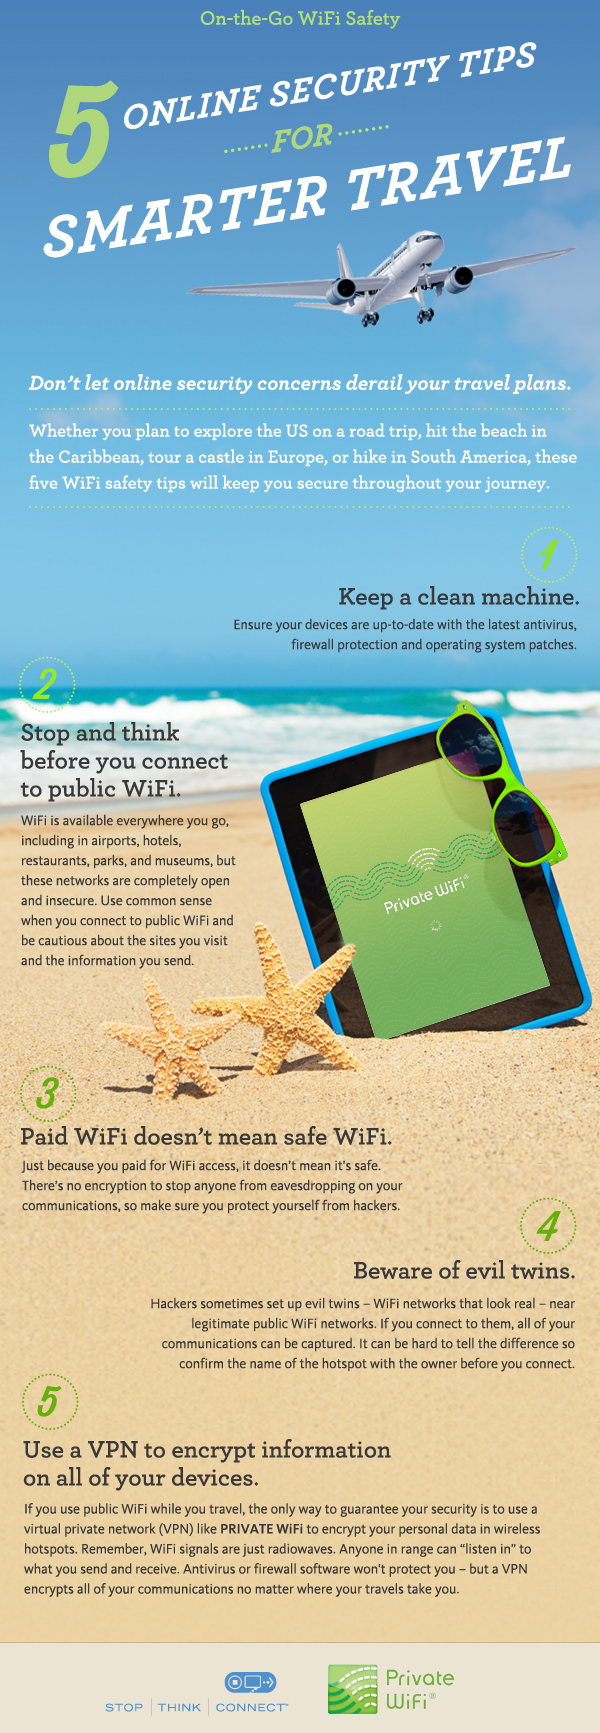 PrivateWifi Travel Safety